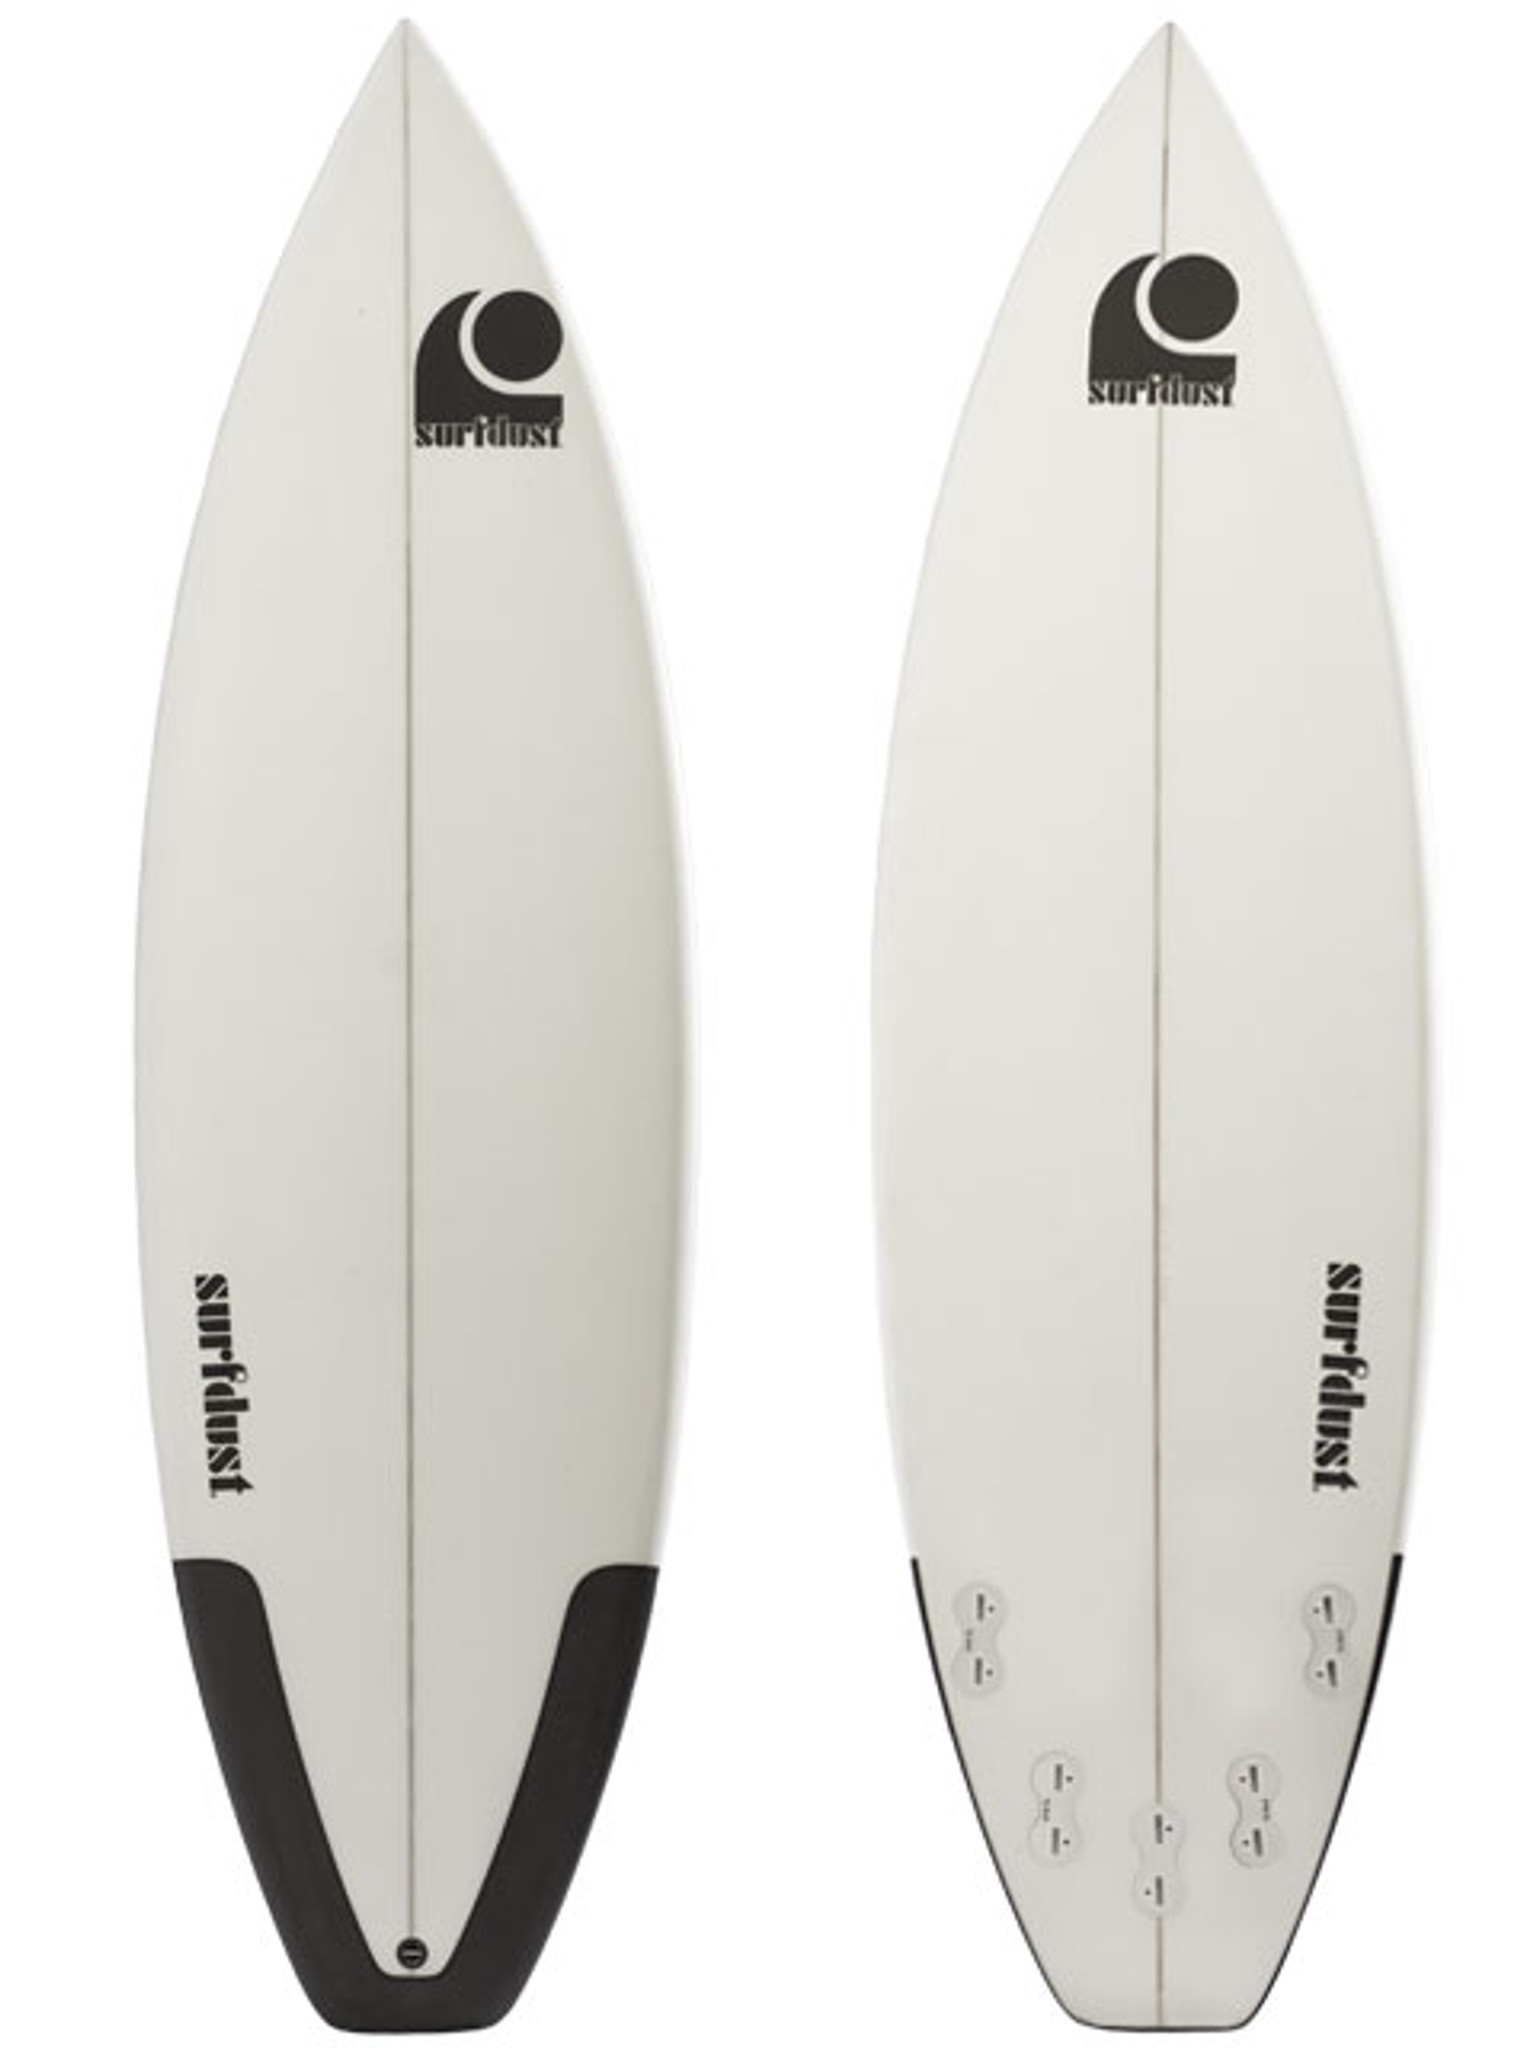 5.8ft & 5.10ft Surfboards - Dusted PRO Series - SURFDUST